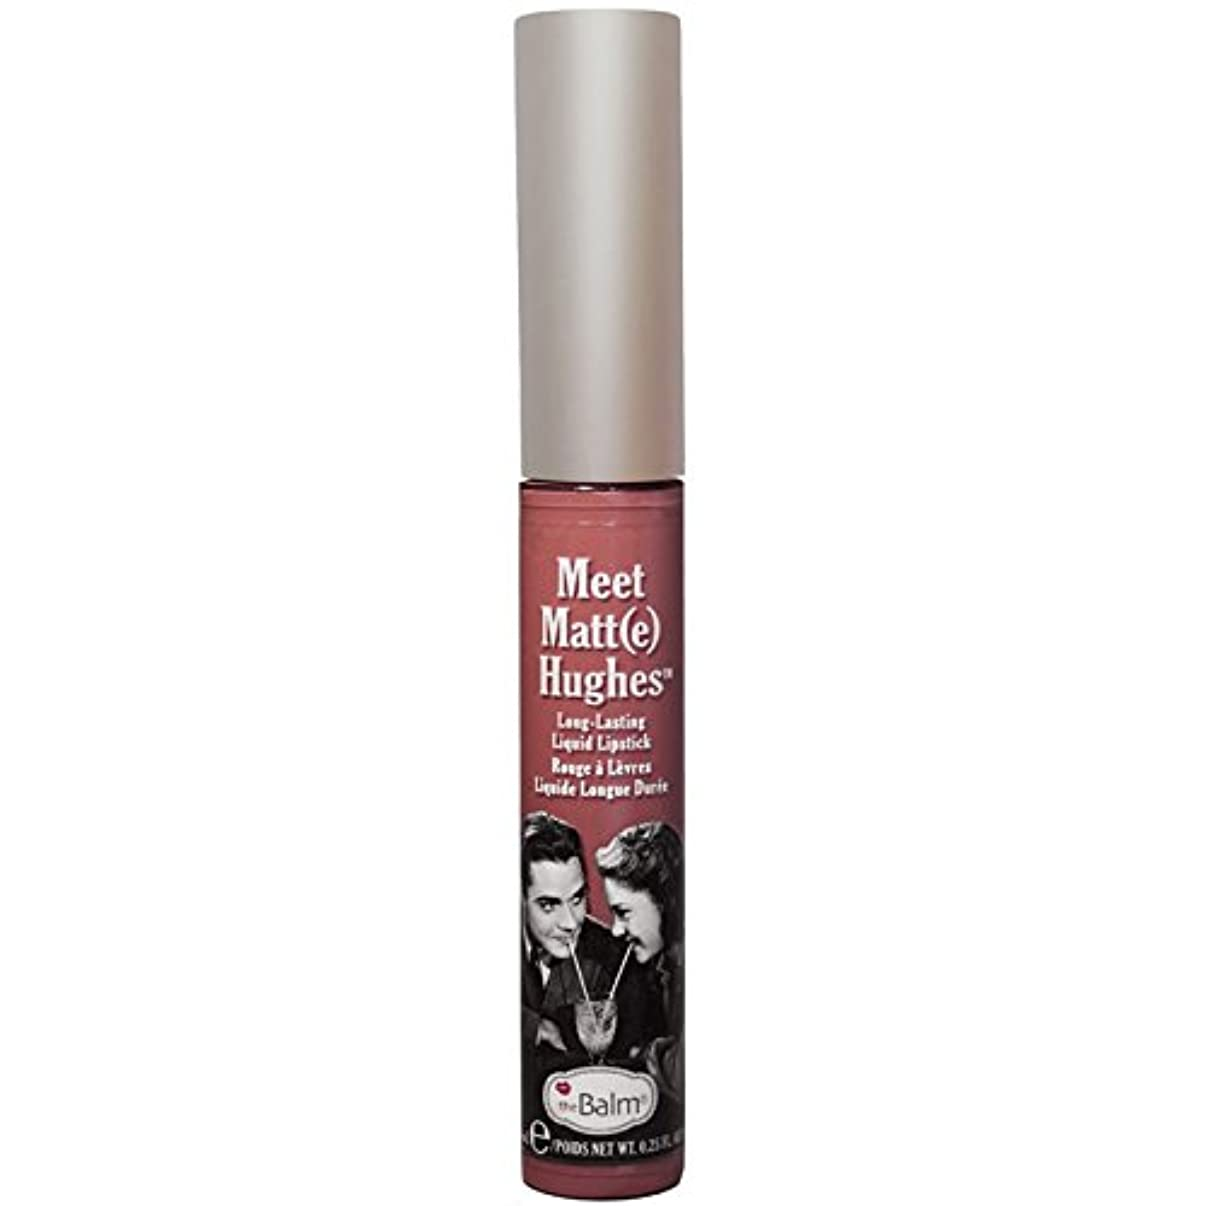 成果見つける常識theBalm - Meet Matt(e) Hughes Long-Lasting Liquid Lipstick Sincere [並行輸入品]